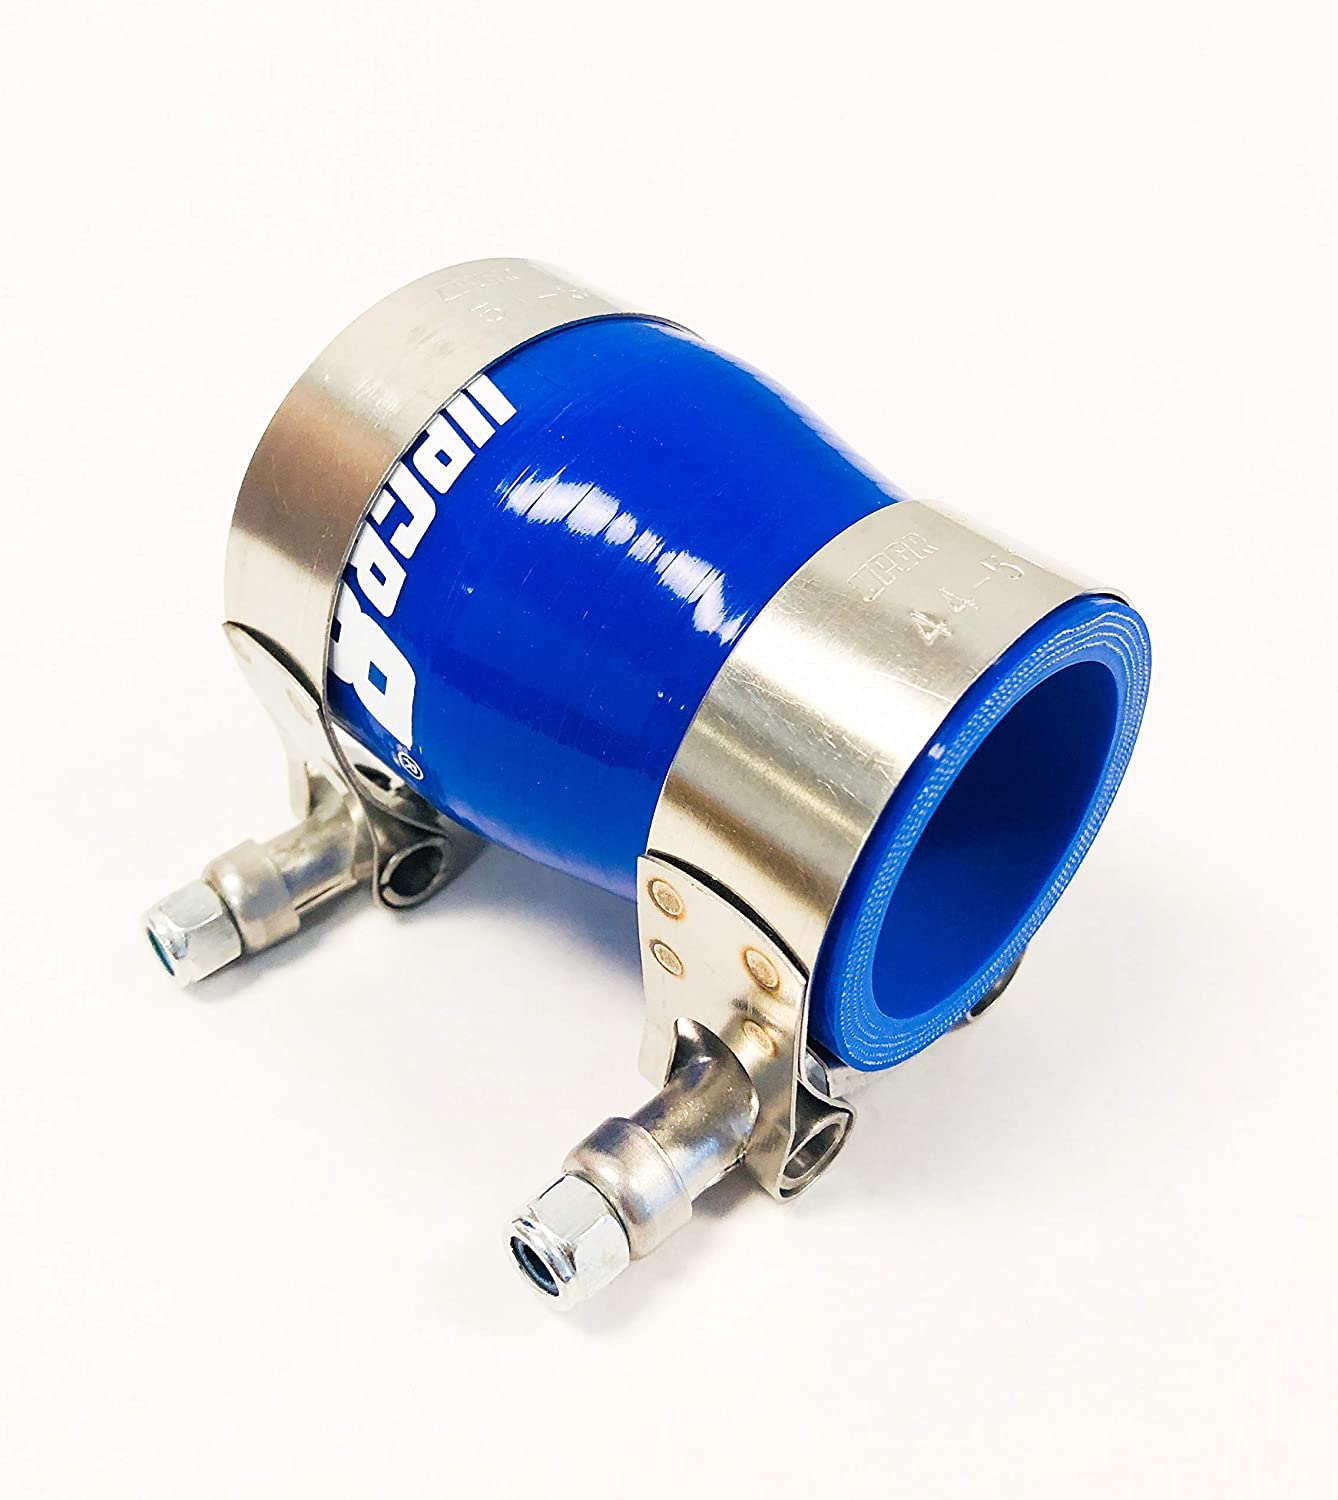 3-3.25 Blue Upgr8 Universal 4-Ply High Performance 3 to 3.25 Straight Reducer Coupler Silicone Hose 76mm to 83mm T Bolt Clamp